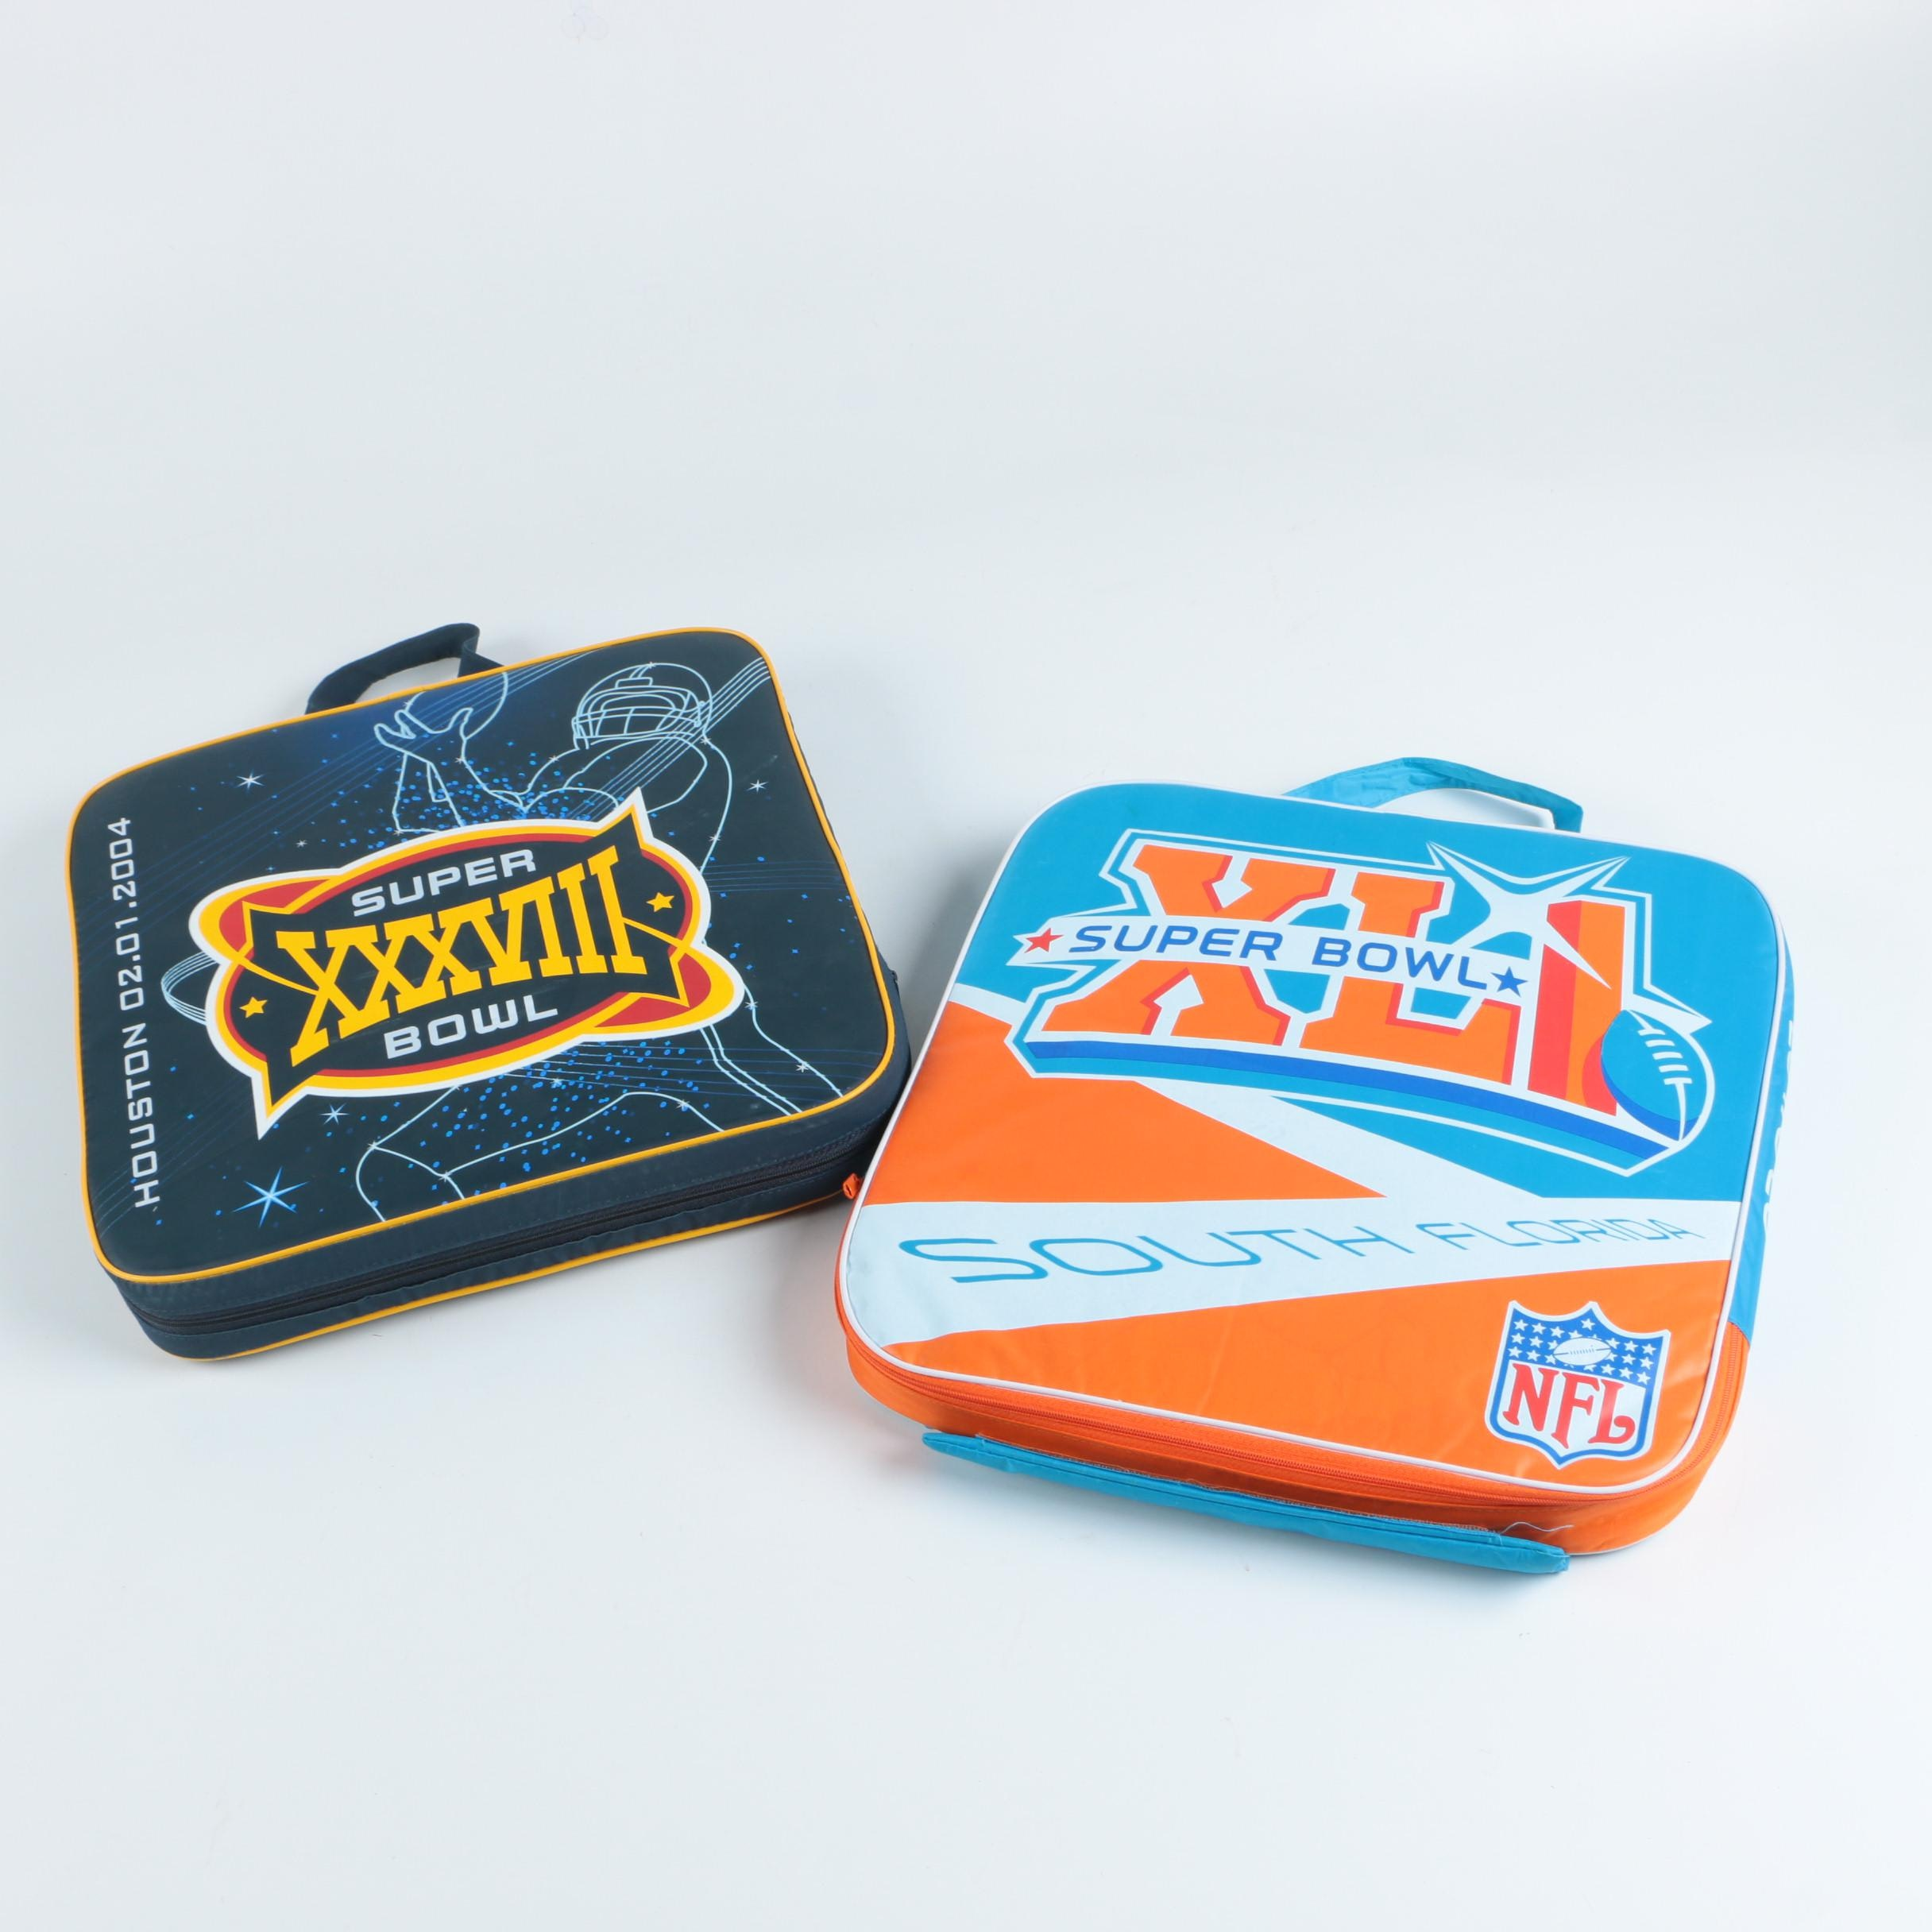 Collection of Commemorative Super Bowl Seat Cushions and Necklace